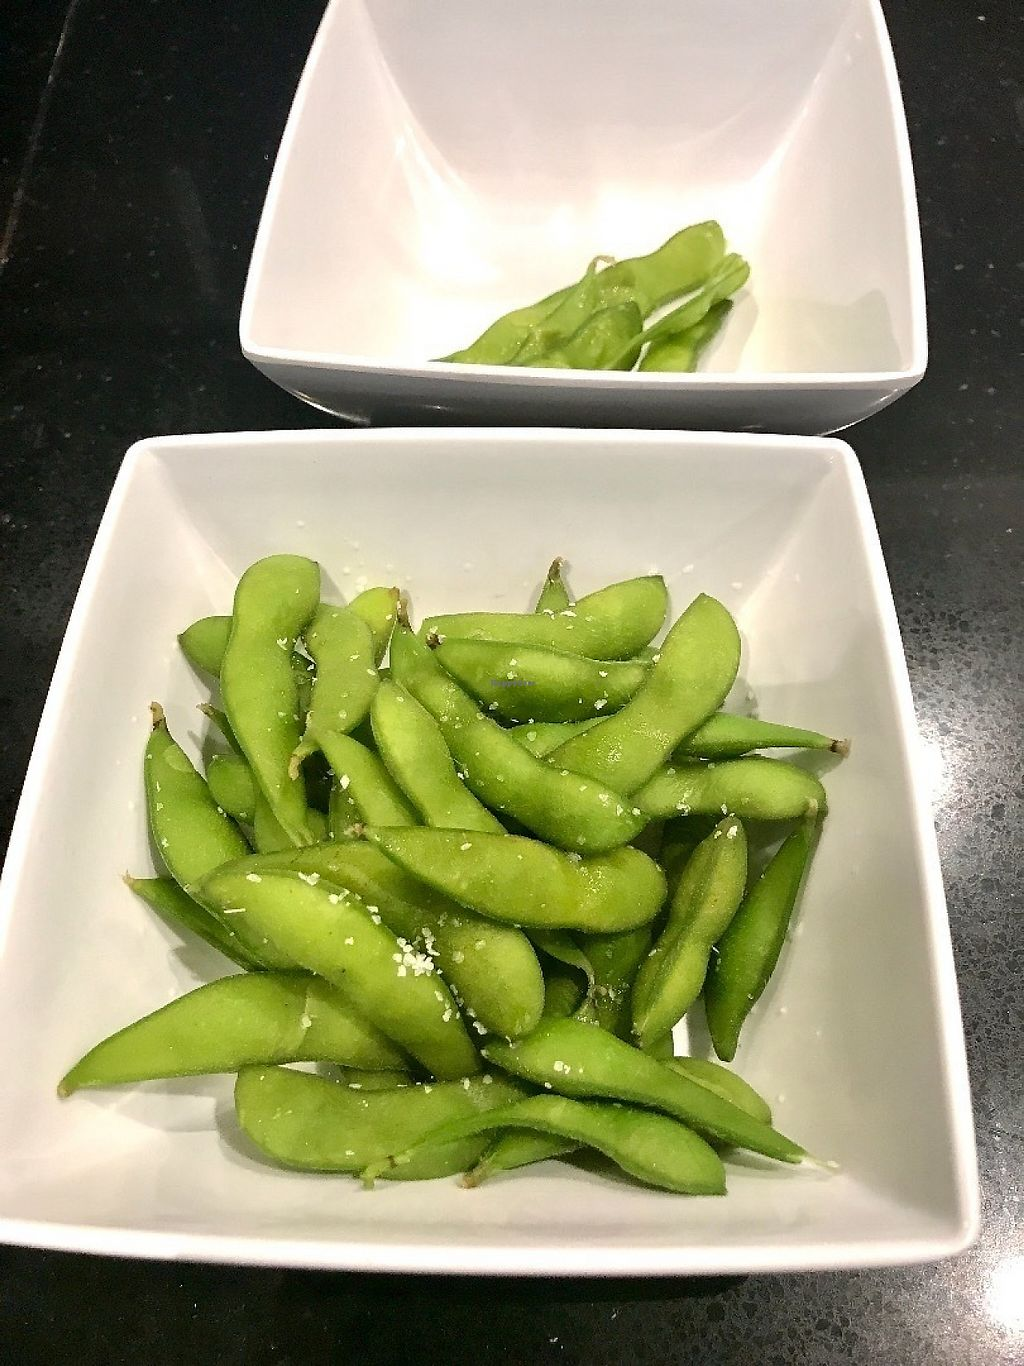 """Photo of Umaizushi - Atlanta Airport  by <a href=""""/members/profile/NR105176"""">NR105176</a> <br/>Edamame with sea salt. Standard <br/> June 1, 2017  - <a href='/contact/abuse/image/88472/264676'>Report</a>"""